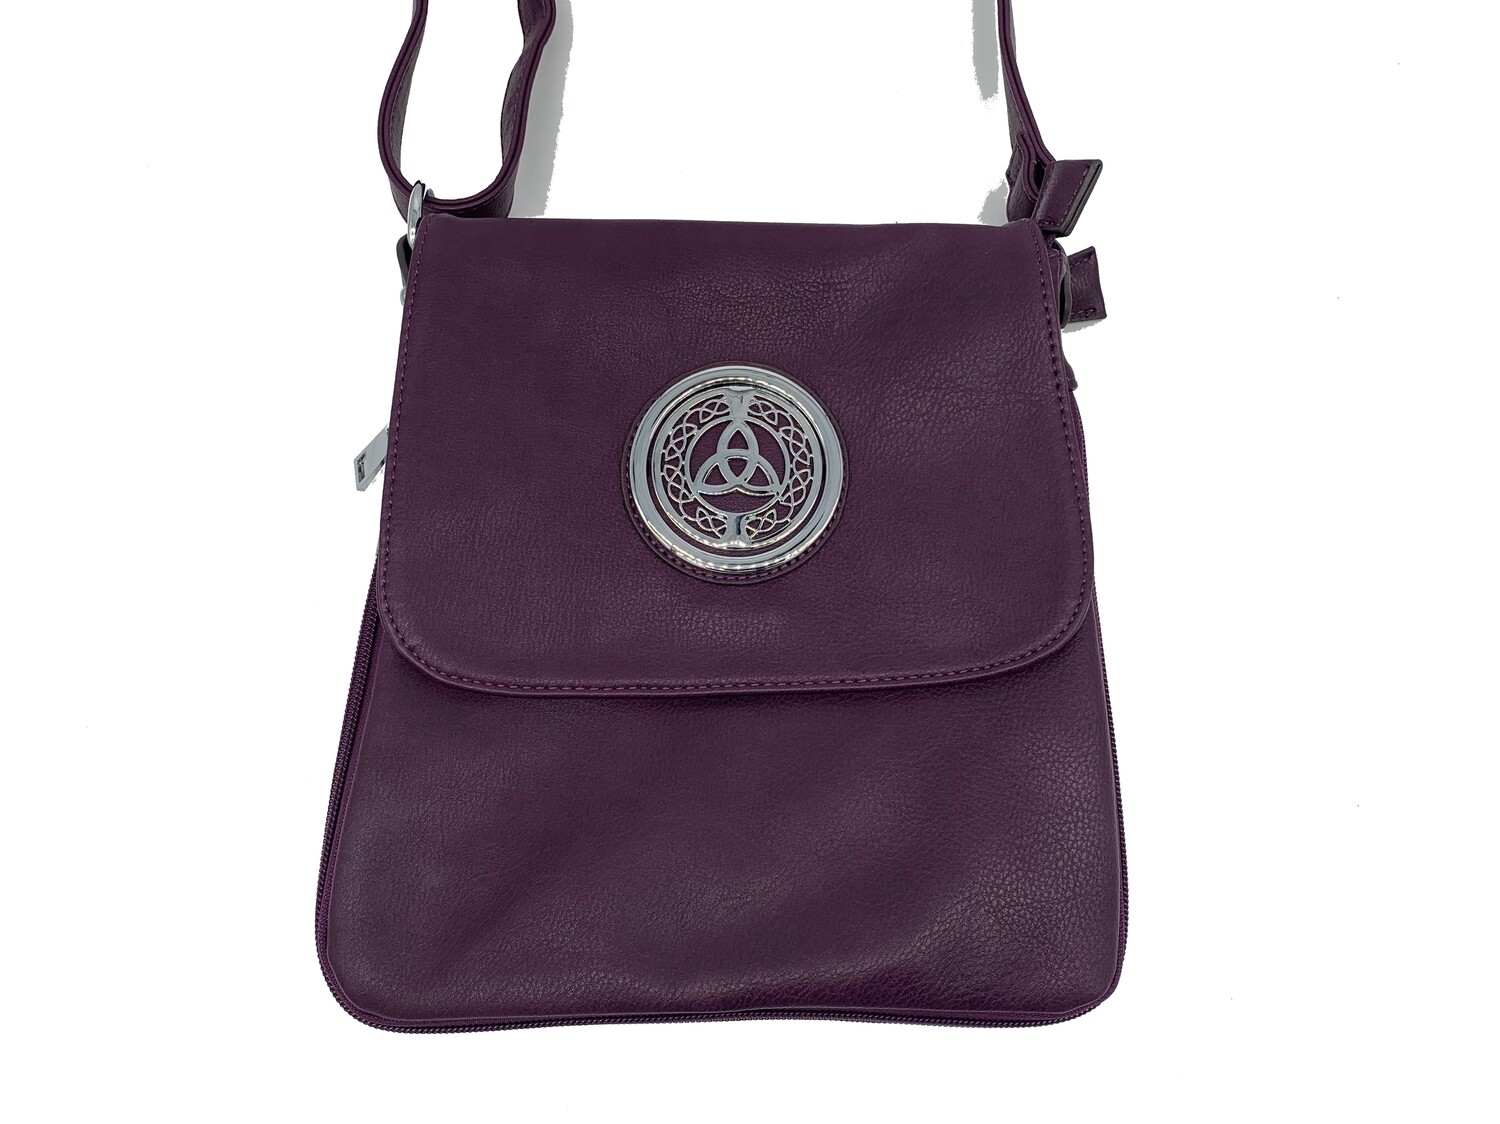 503 Expandale Zip Around Bag  purple